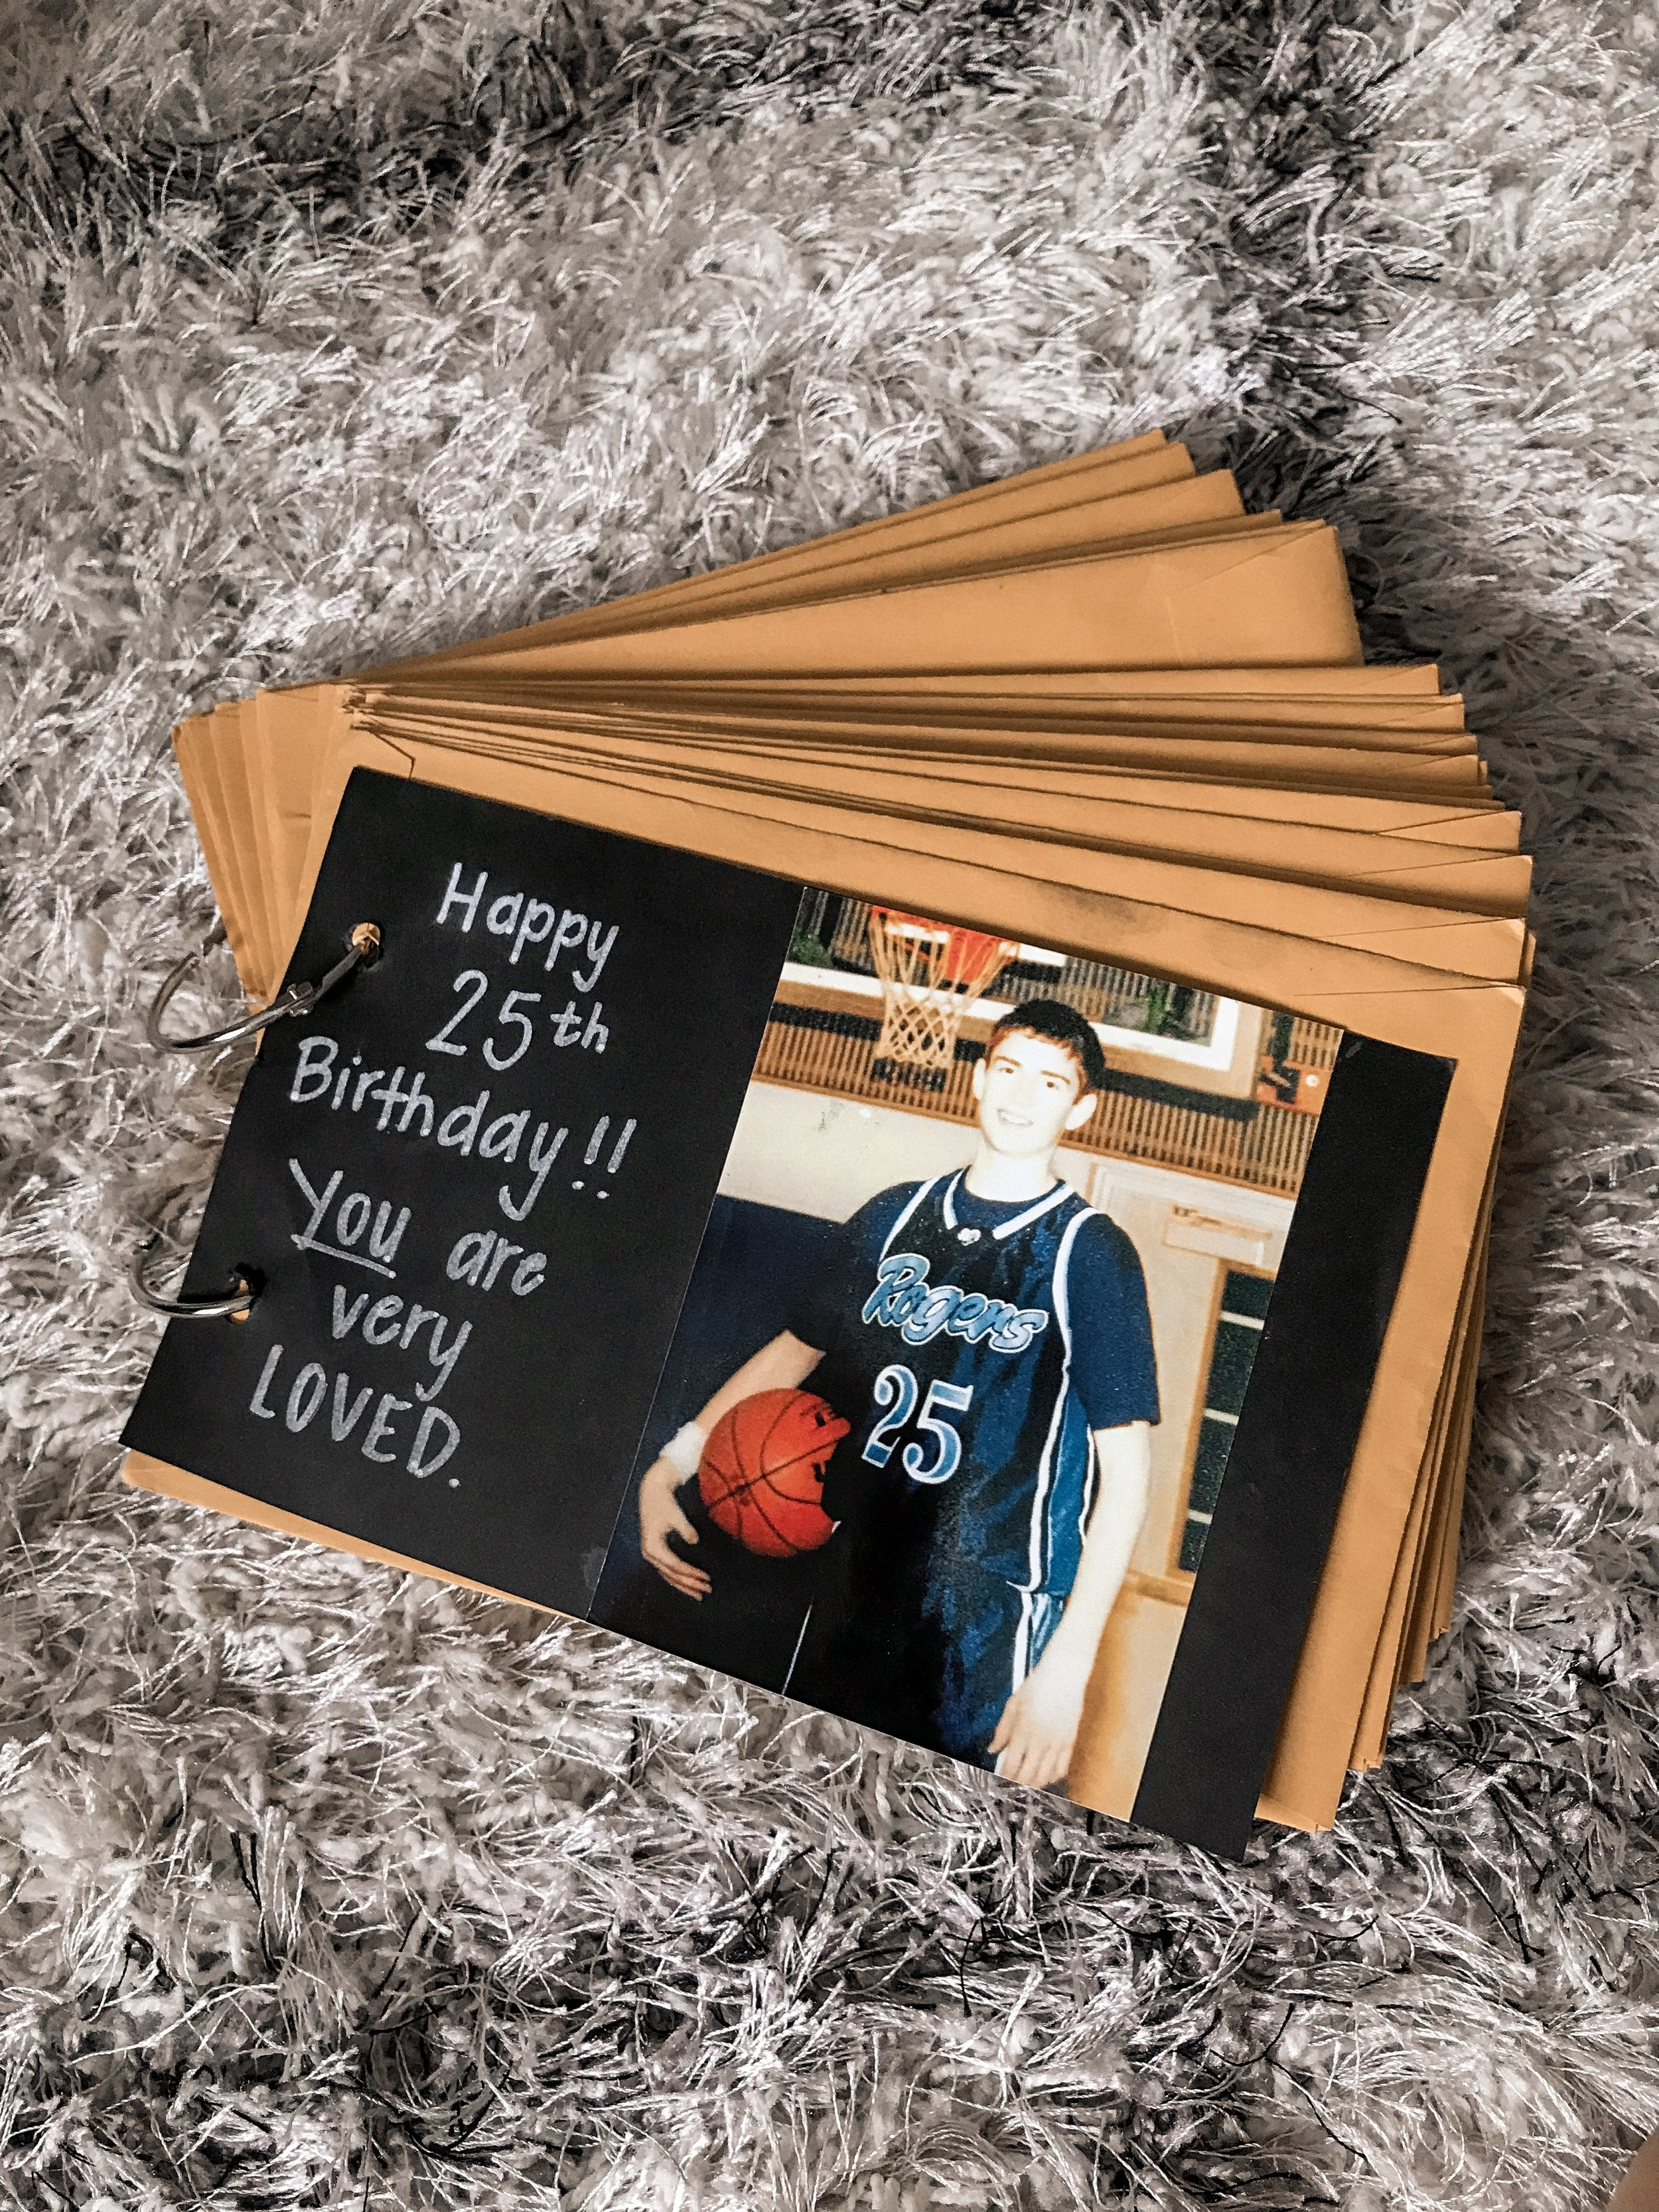 Bre Sheppard Thoughtful Gift Giving Ideas : Valentine's Day - Happy Birthday Book.JPG